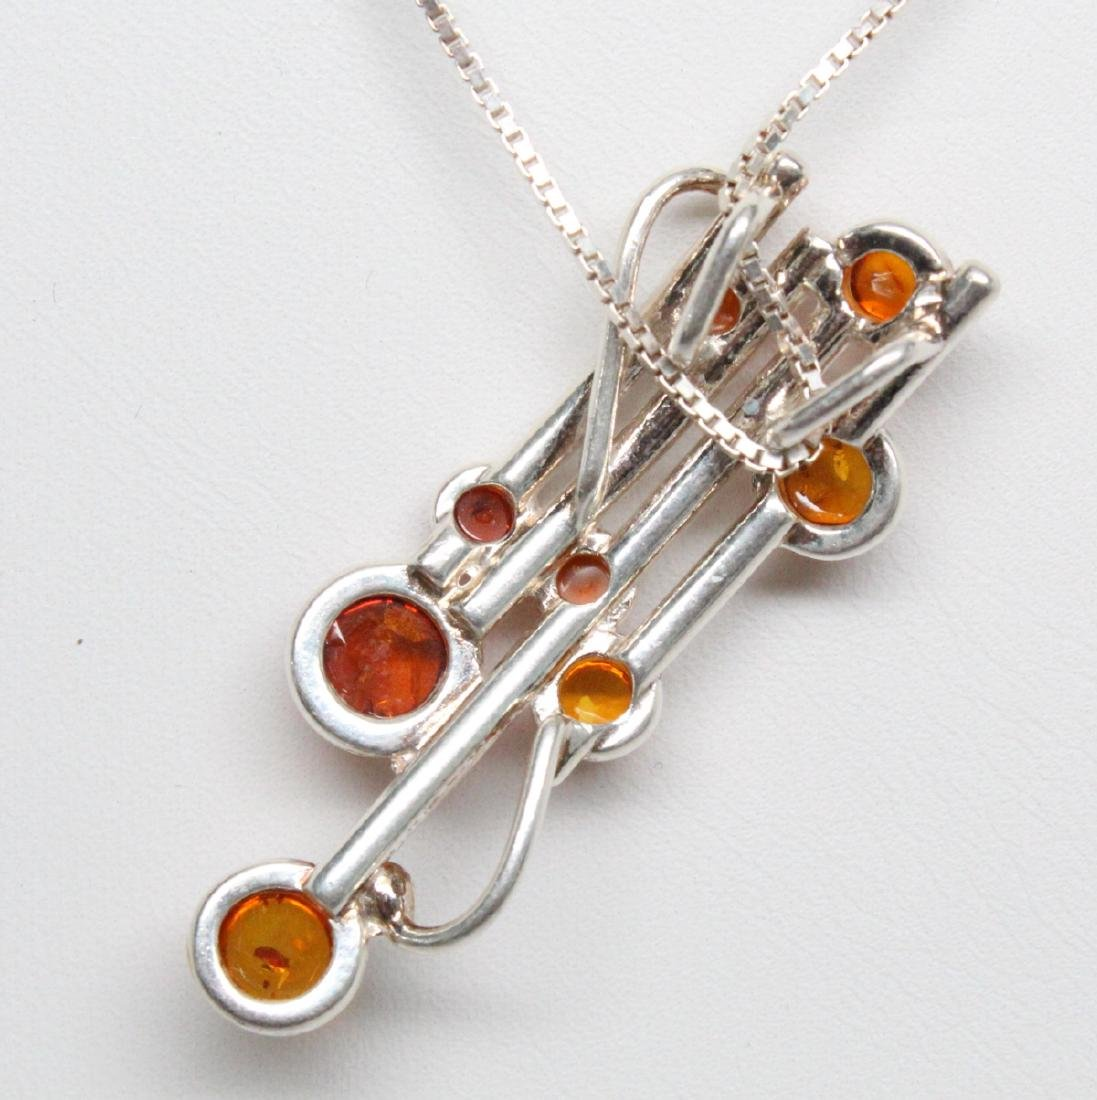 Sterling Silver & Baltic Amber Modernist Necklace - 3